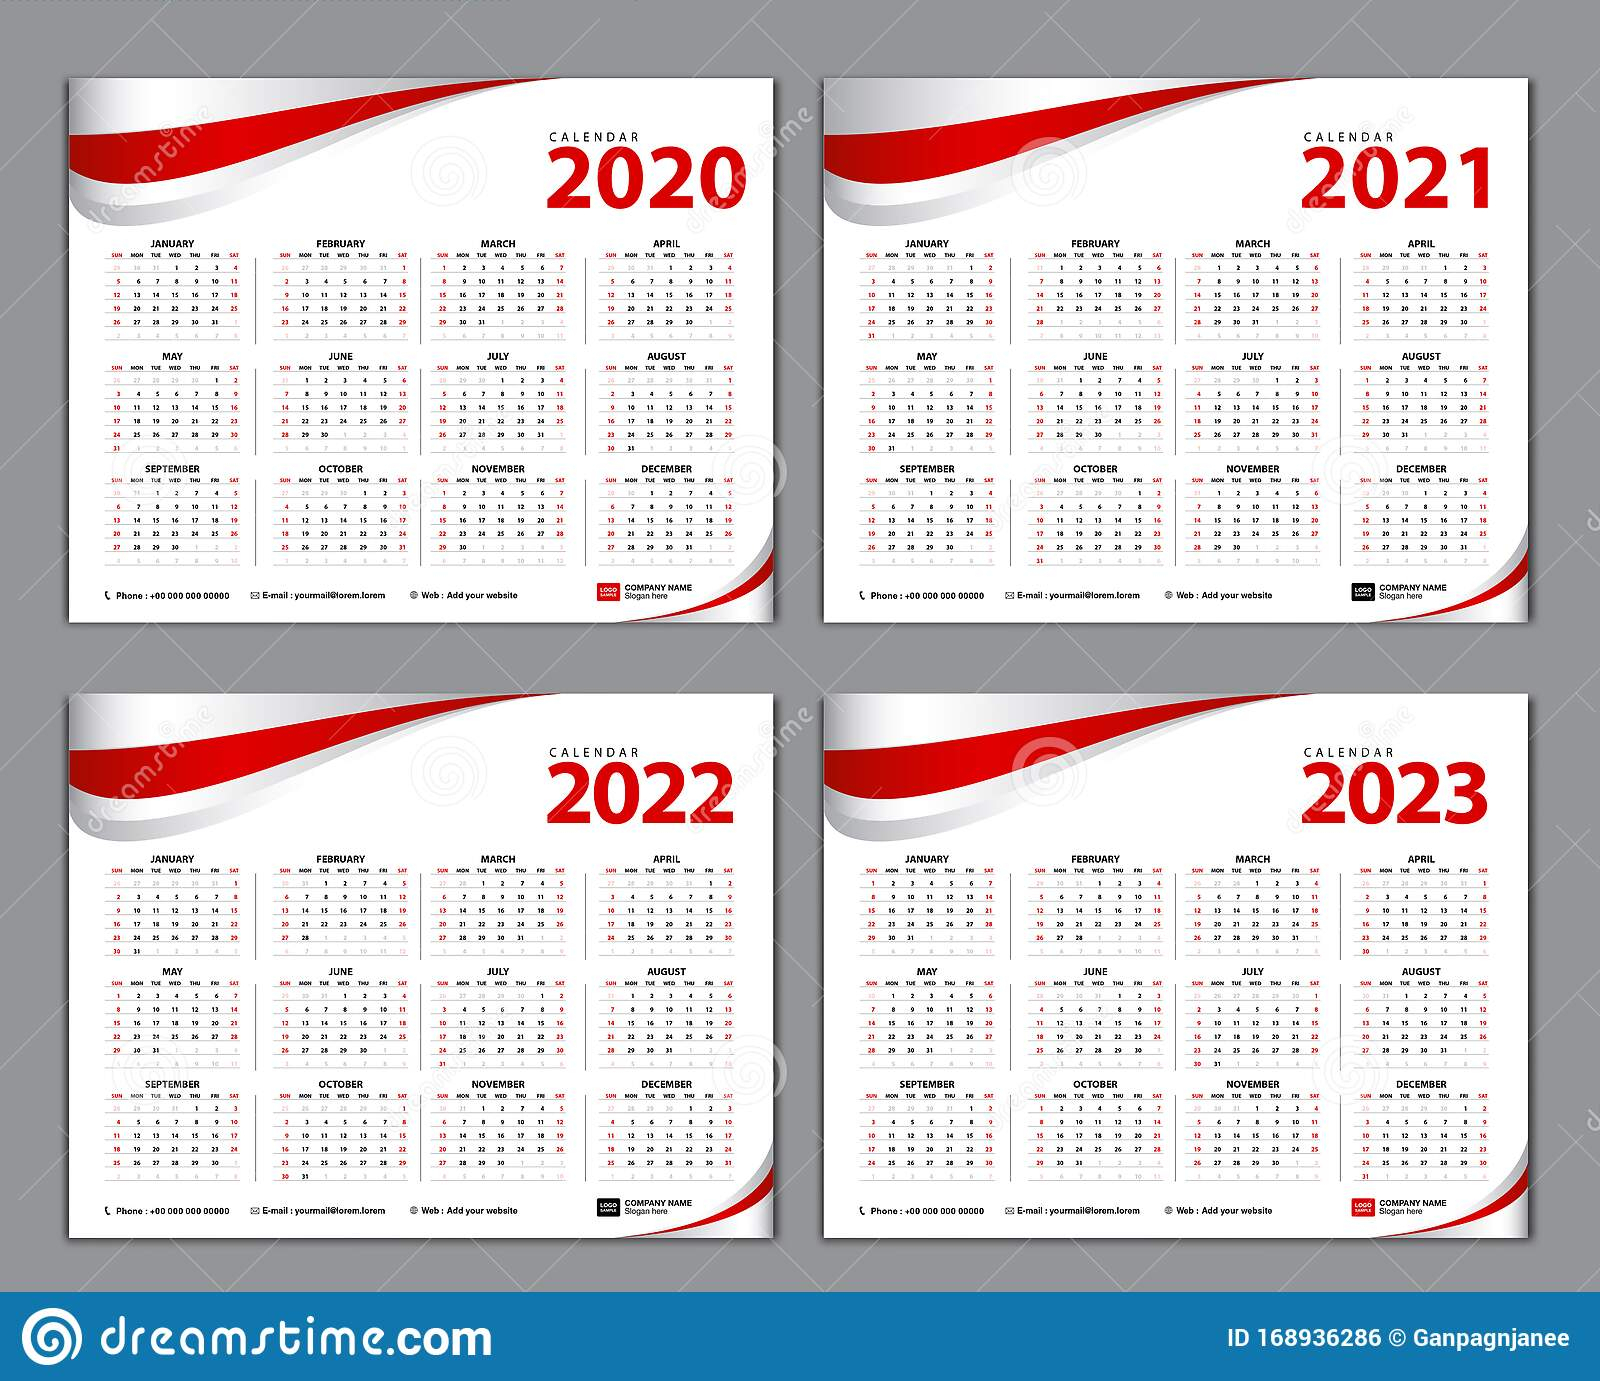 Simple Calendar Template For 2020, 2021, 2022, 2023 Years within 4 5 4 Retail Calendar 2022 2023